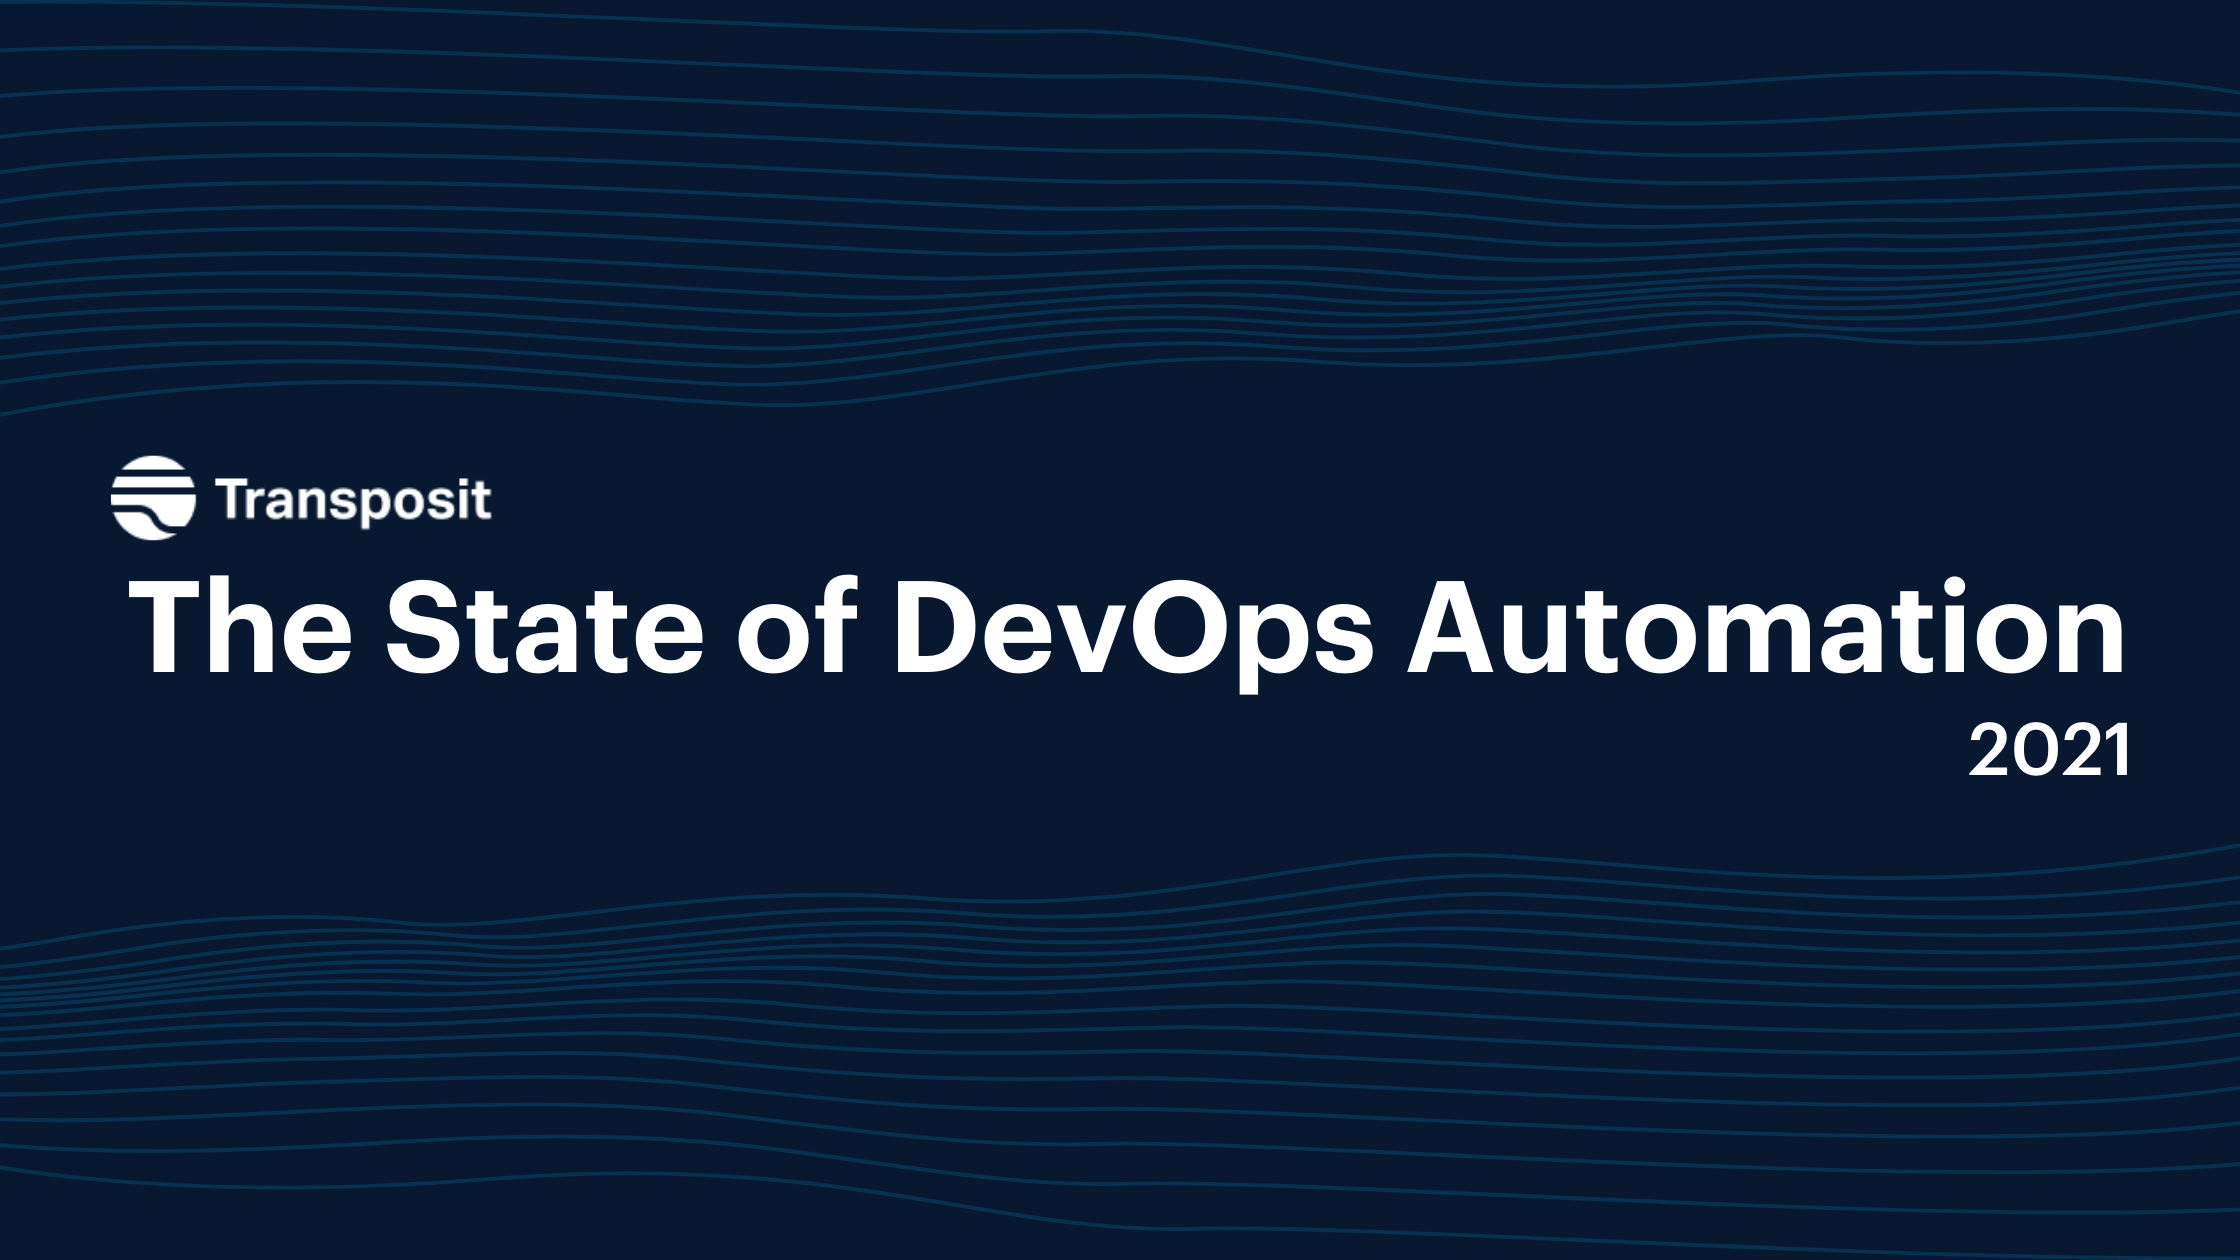 State of DevOps Automation 2021 Report